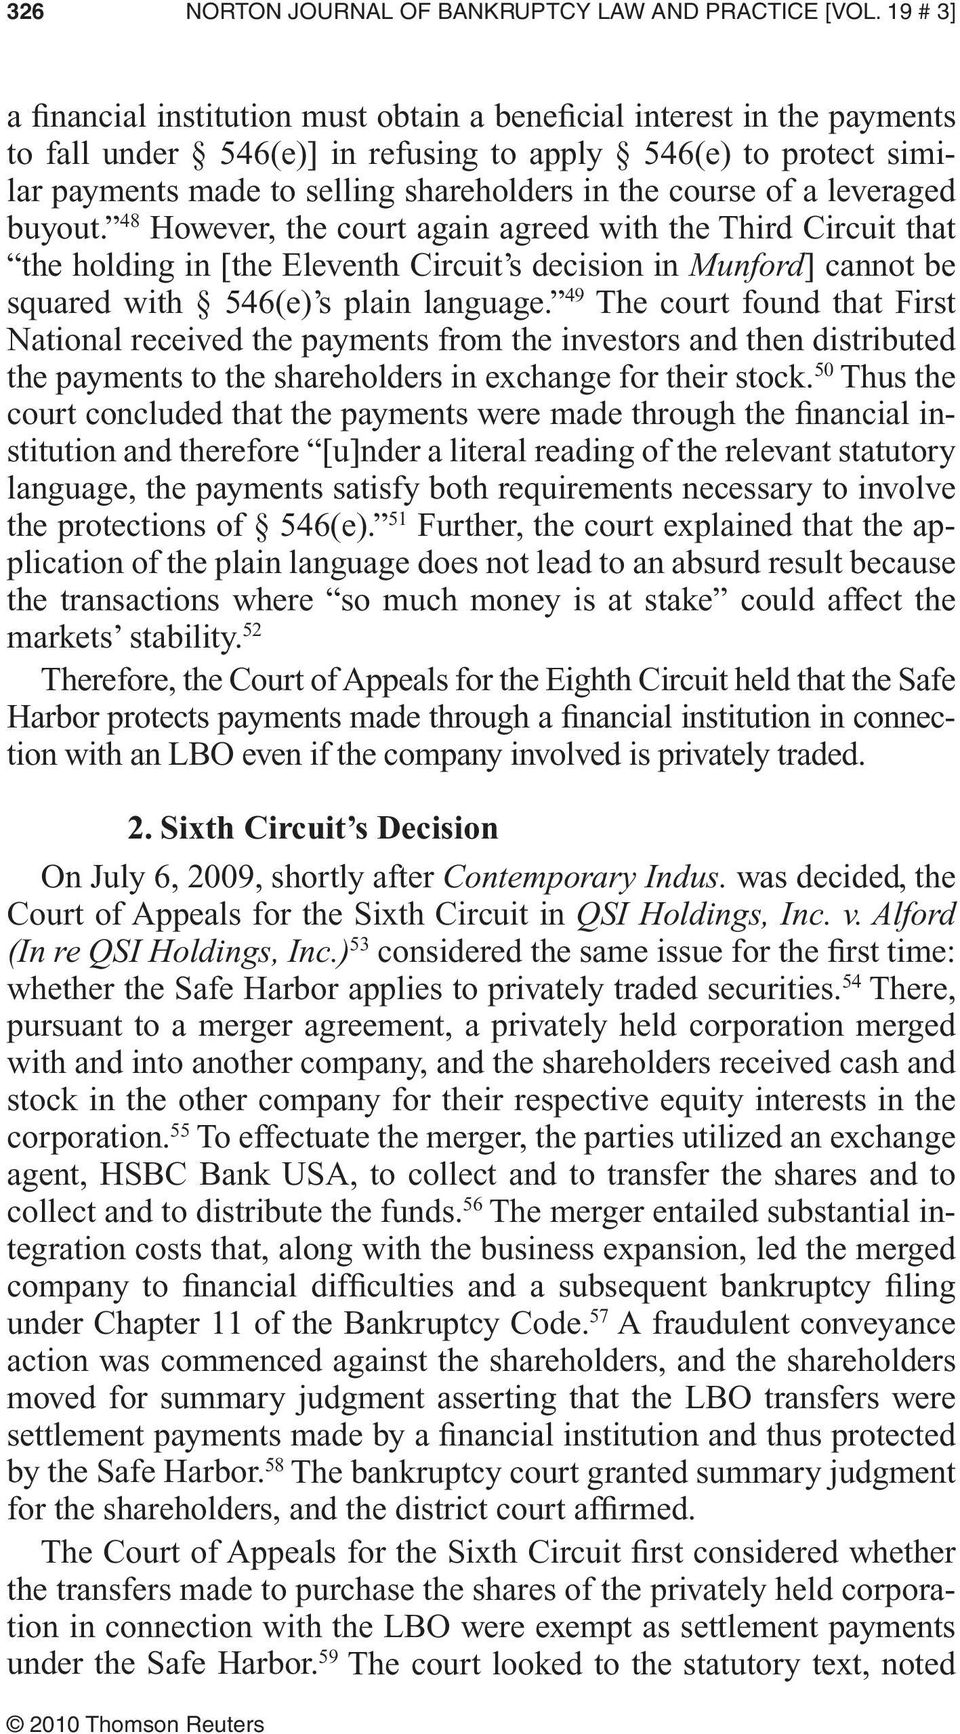 course of a leveraged buyout. 48 However, the court again agreed with the Third Circuit that the holding in [the Eleventh Circuit s decision in Munford] cannot be squared with 546(e) s plain language.